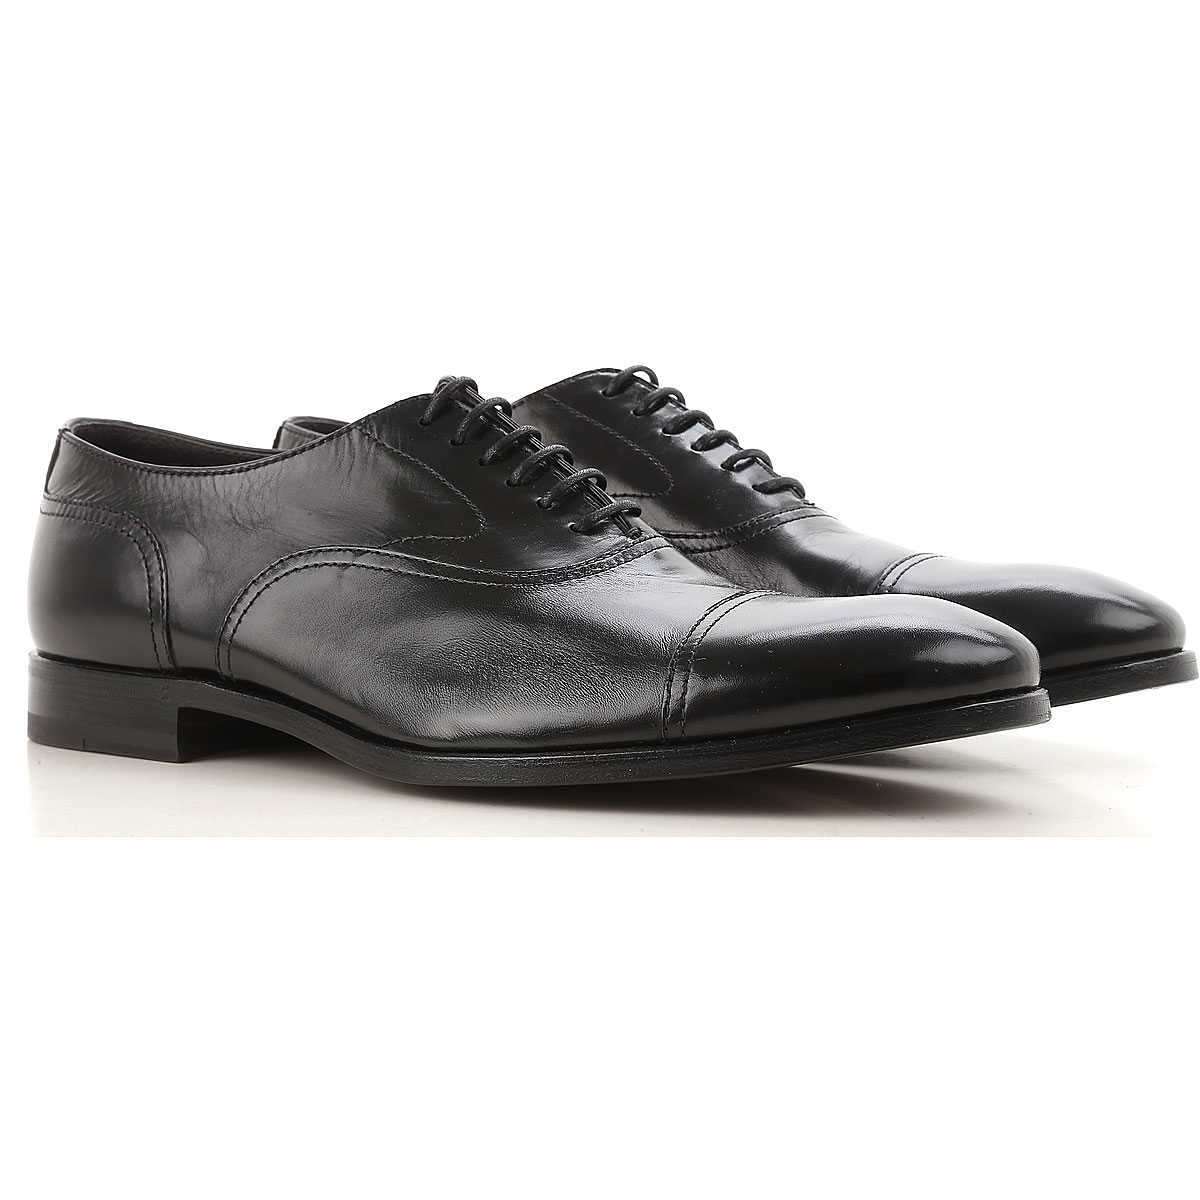 Henderson Lace Up Shoes for Men Oxfords 10 5.5 6 6.5 7 7.5 8 8.5 9 9.5 Derbies and Brogues UK - GOOFASH